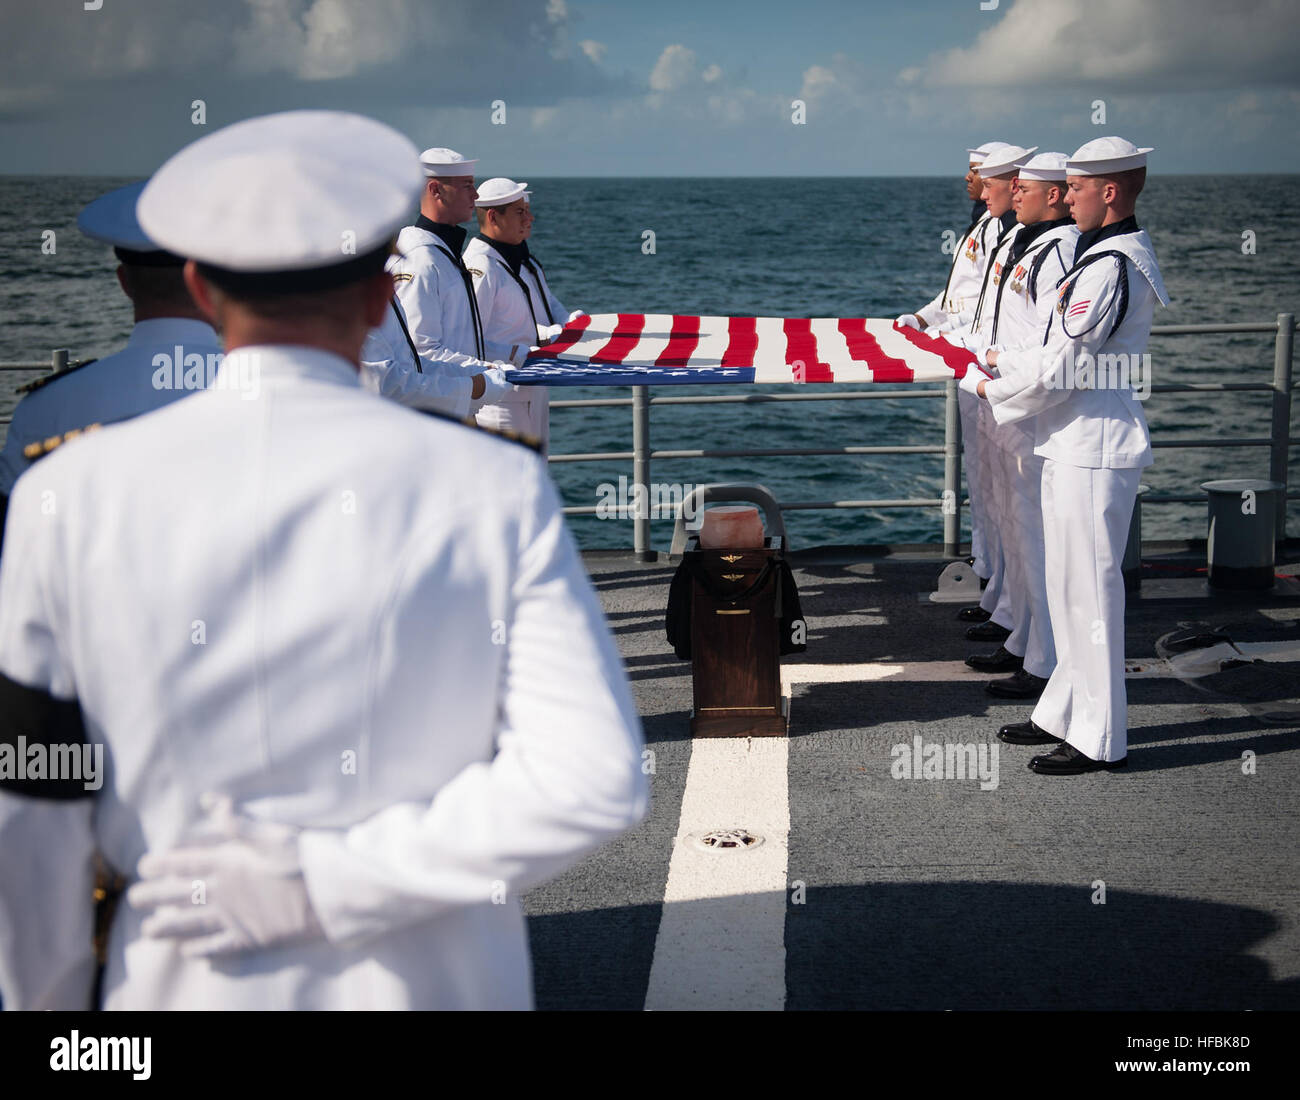 ATLANTIC OCEAN (Sept. 14, 2012) Members of the U.S. Navy Ceremonial Guard hold an American flag over the cremains - Stock Image